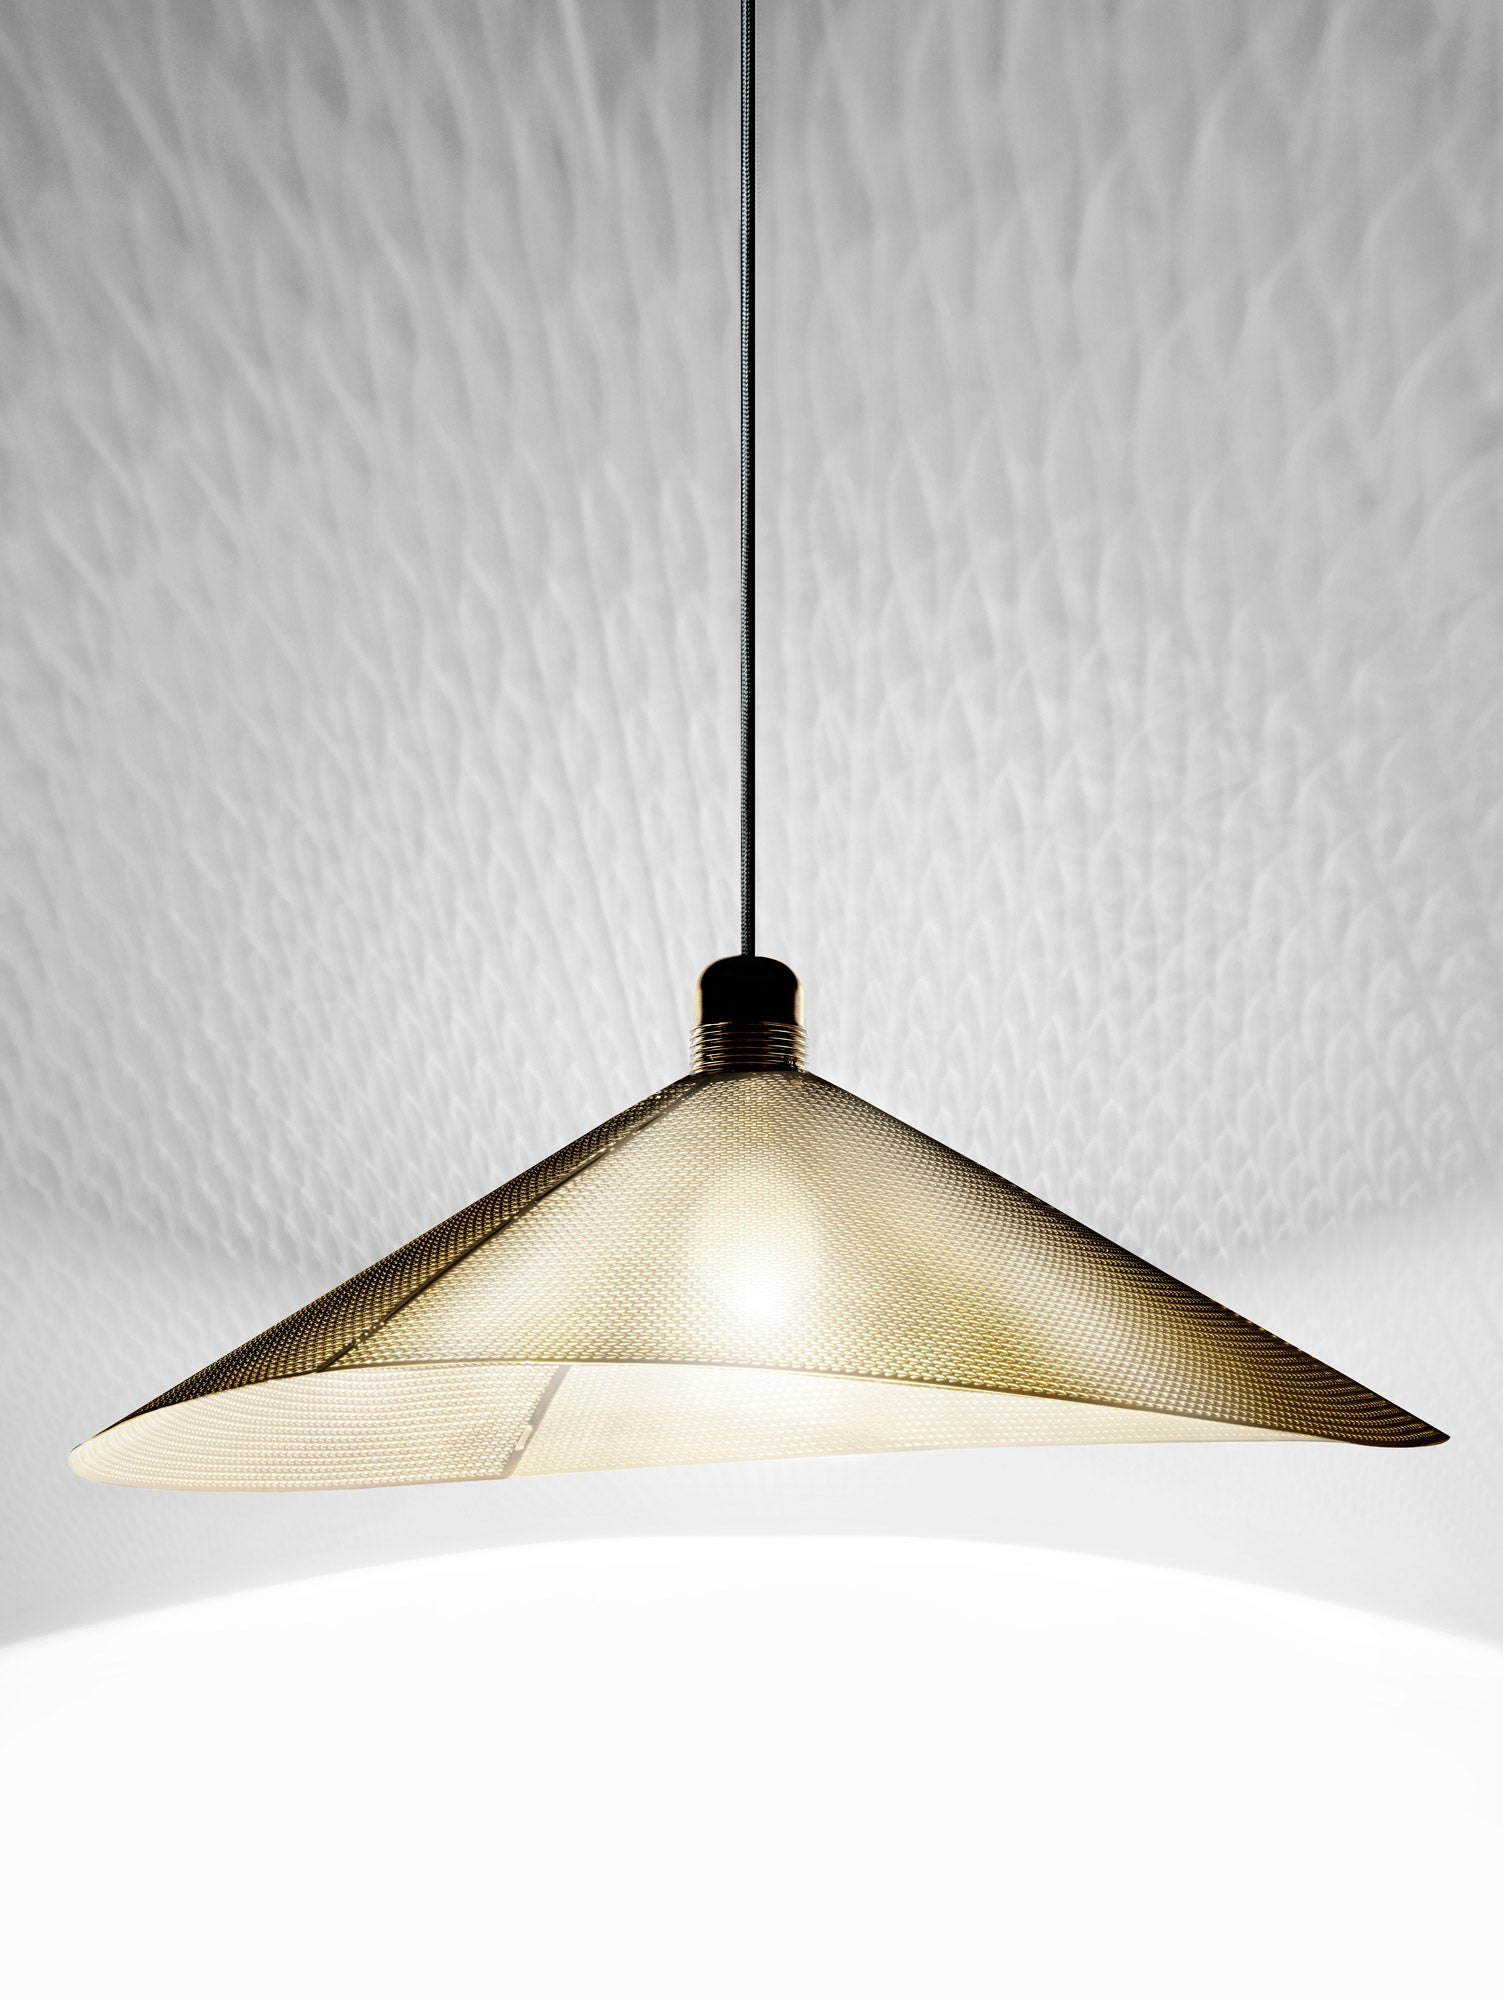 Metallodolce Cymbal brass lamp shade